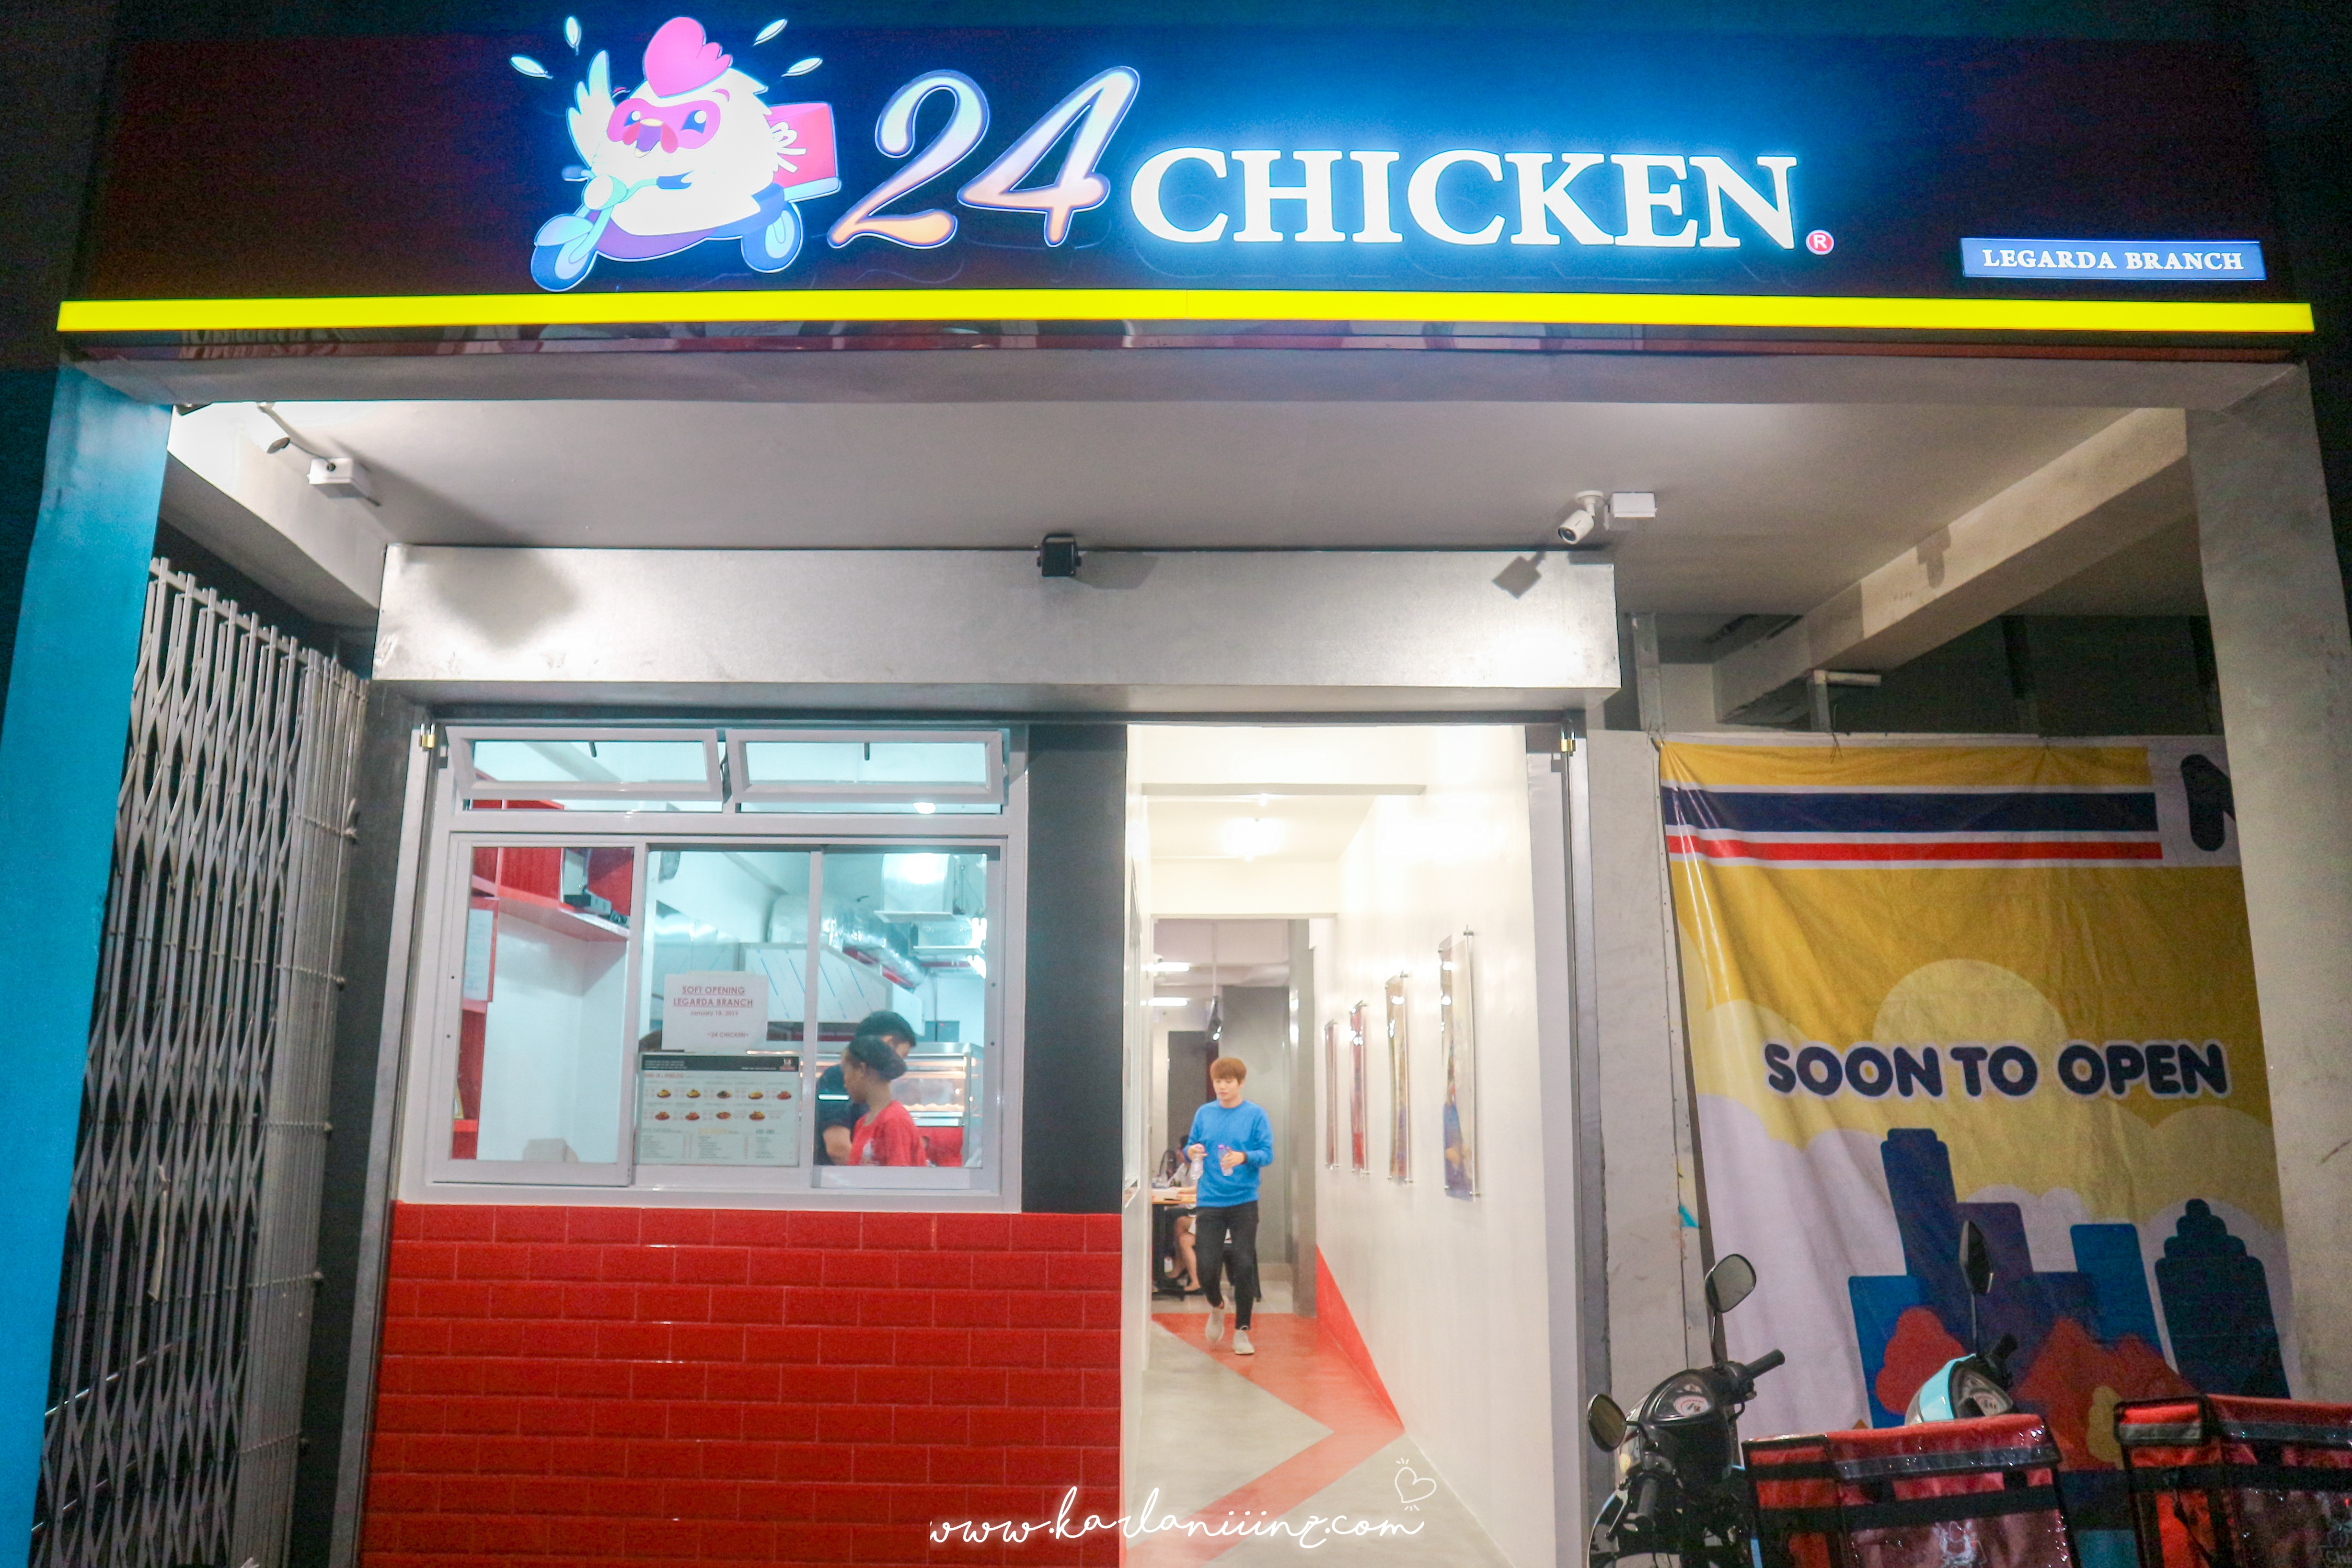 24 chicken legarda